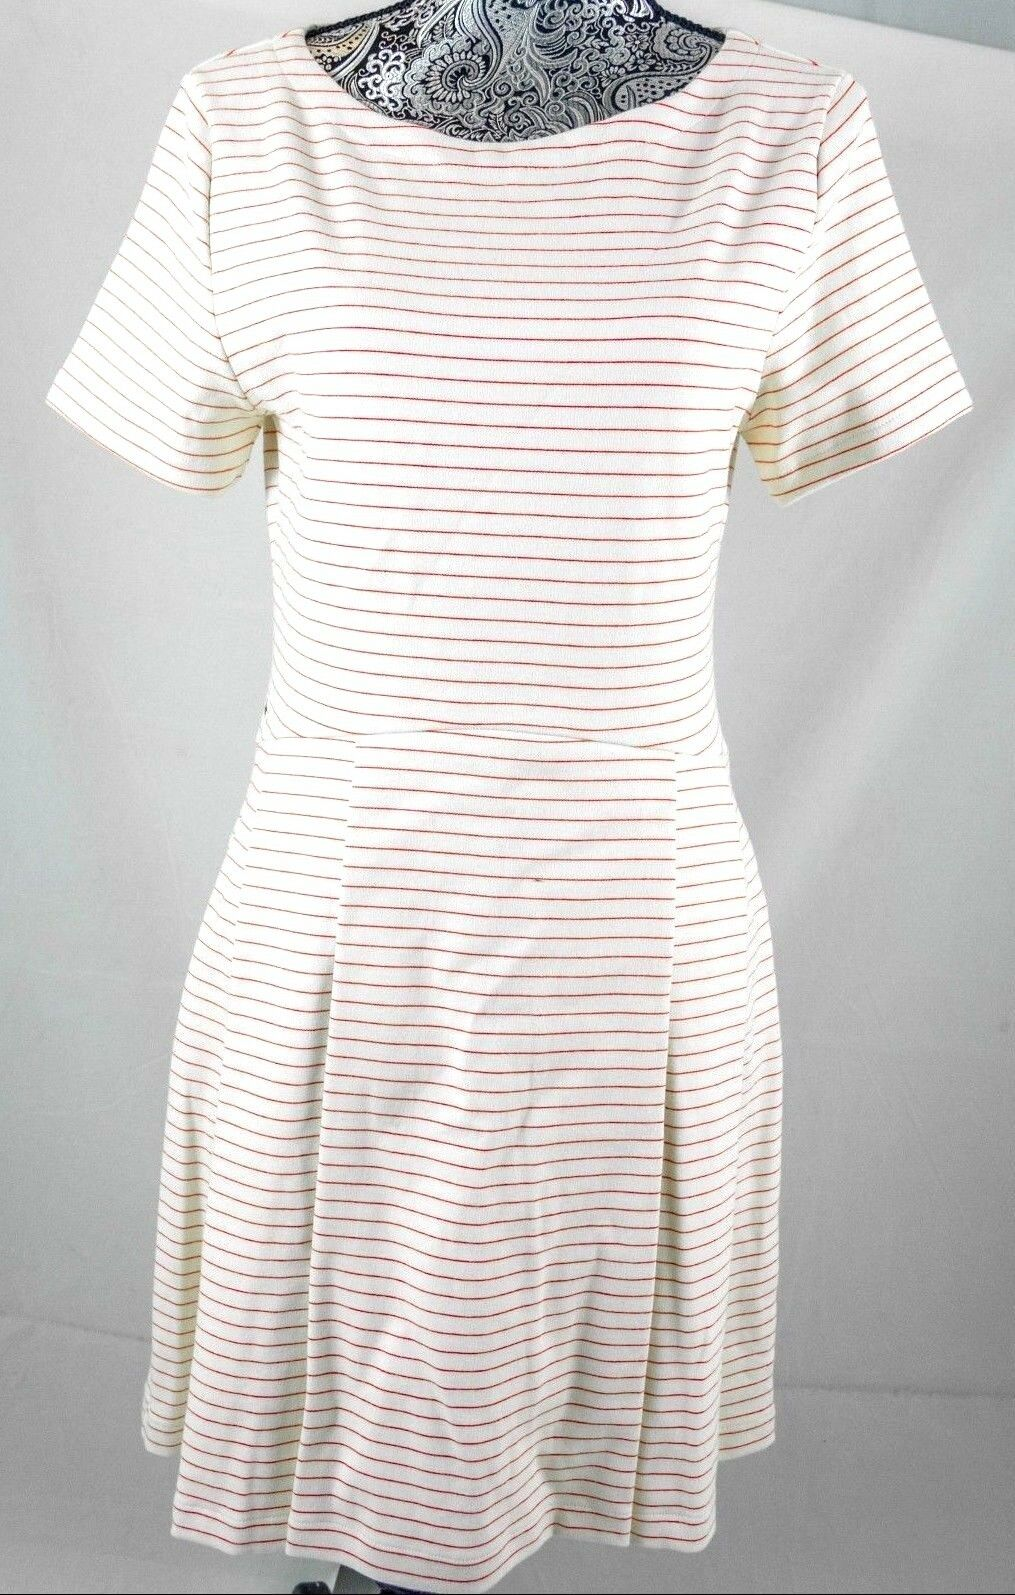 Lacoste White Striped Cap Sleeve Dress  195 Size 40 8 EF8266 BNWT 100% Authentic